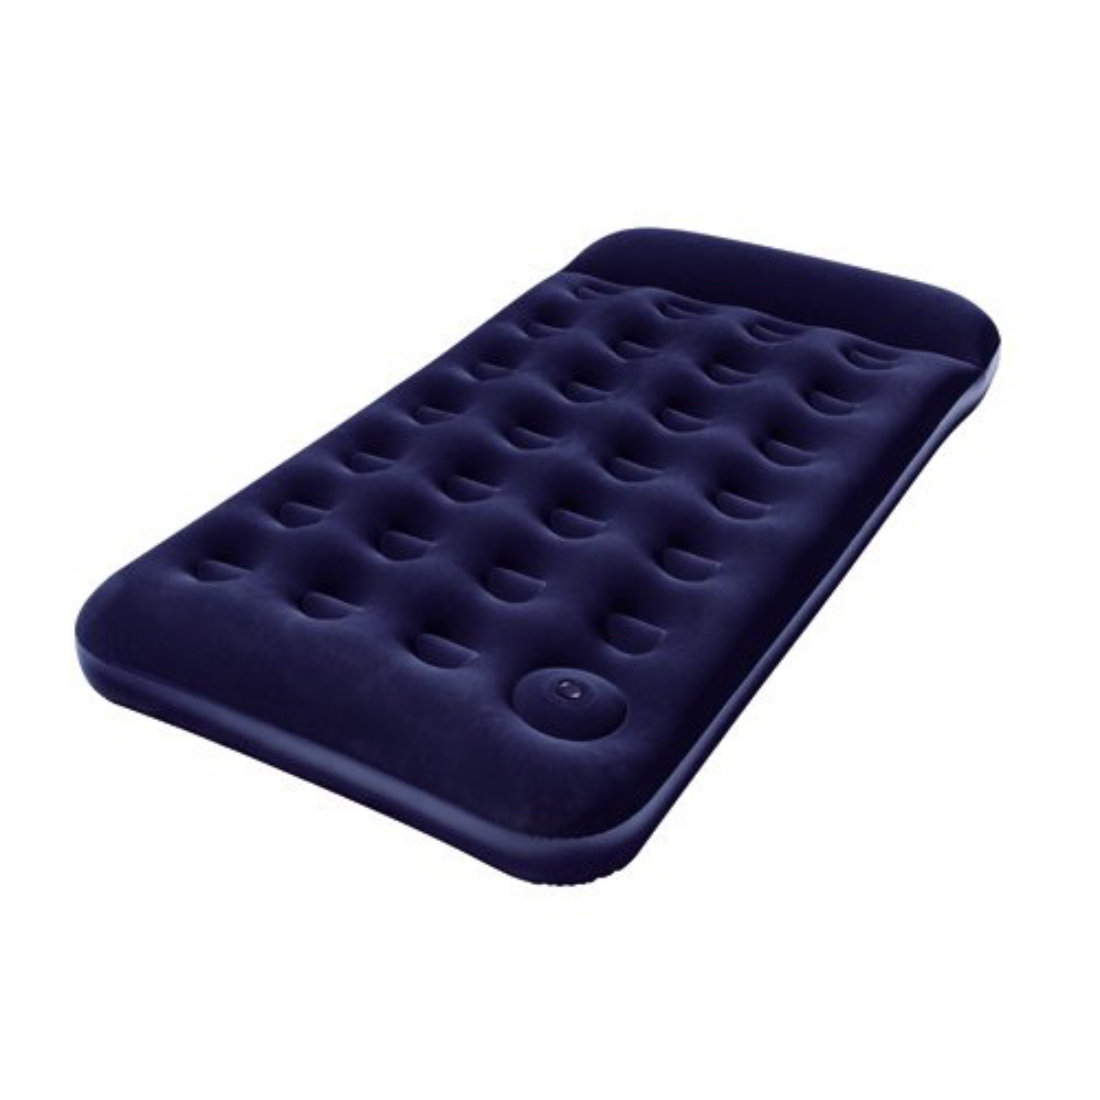 Bestway Comfort Quest Inflatable Twin Size Flocked Air Bed